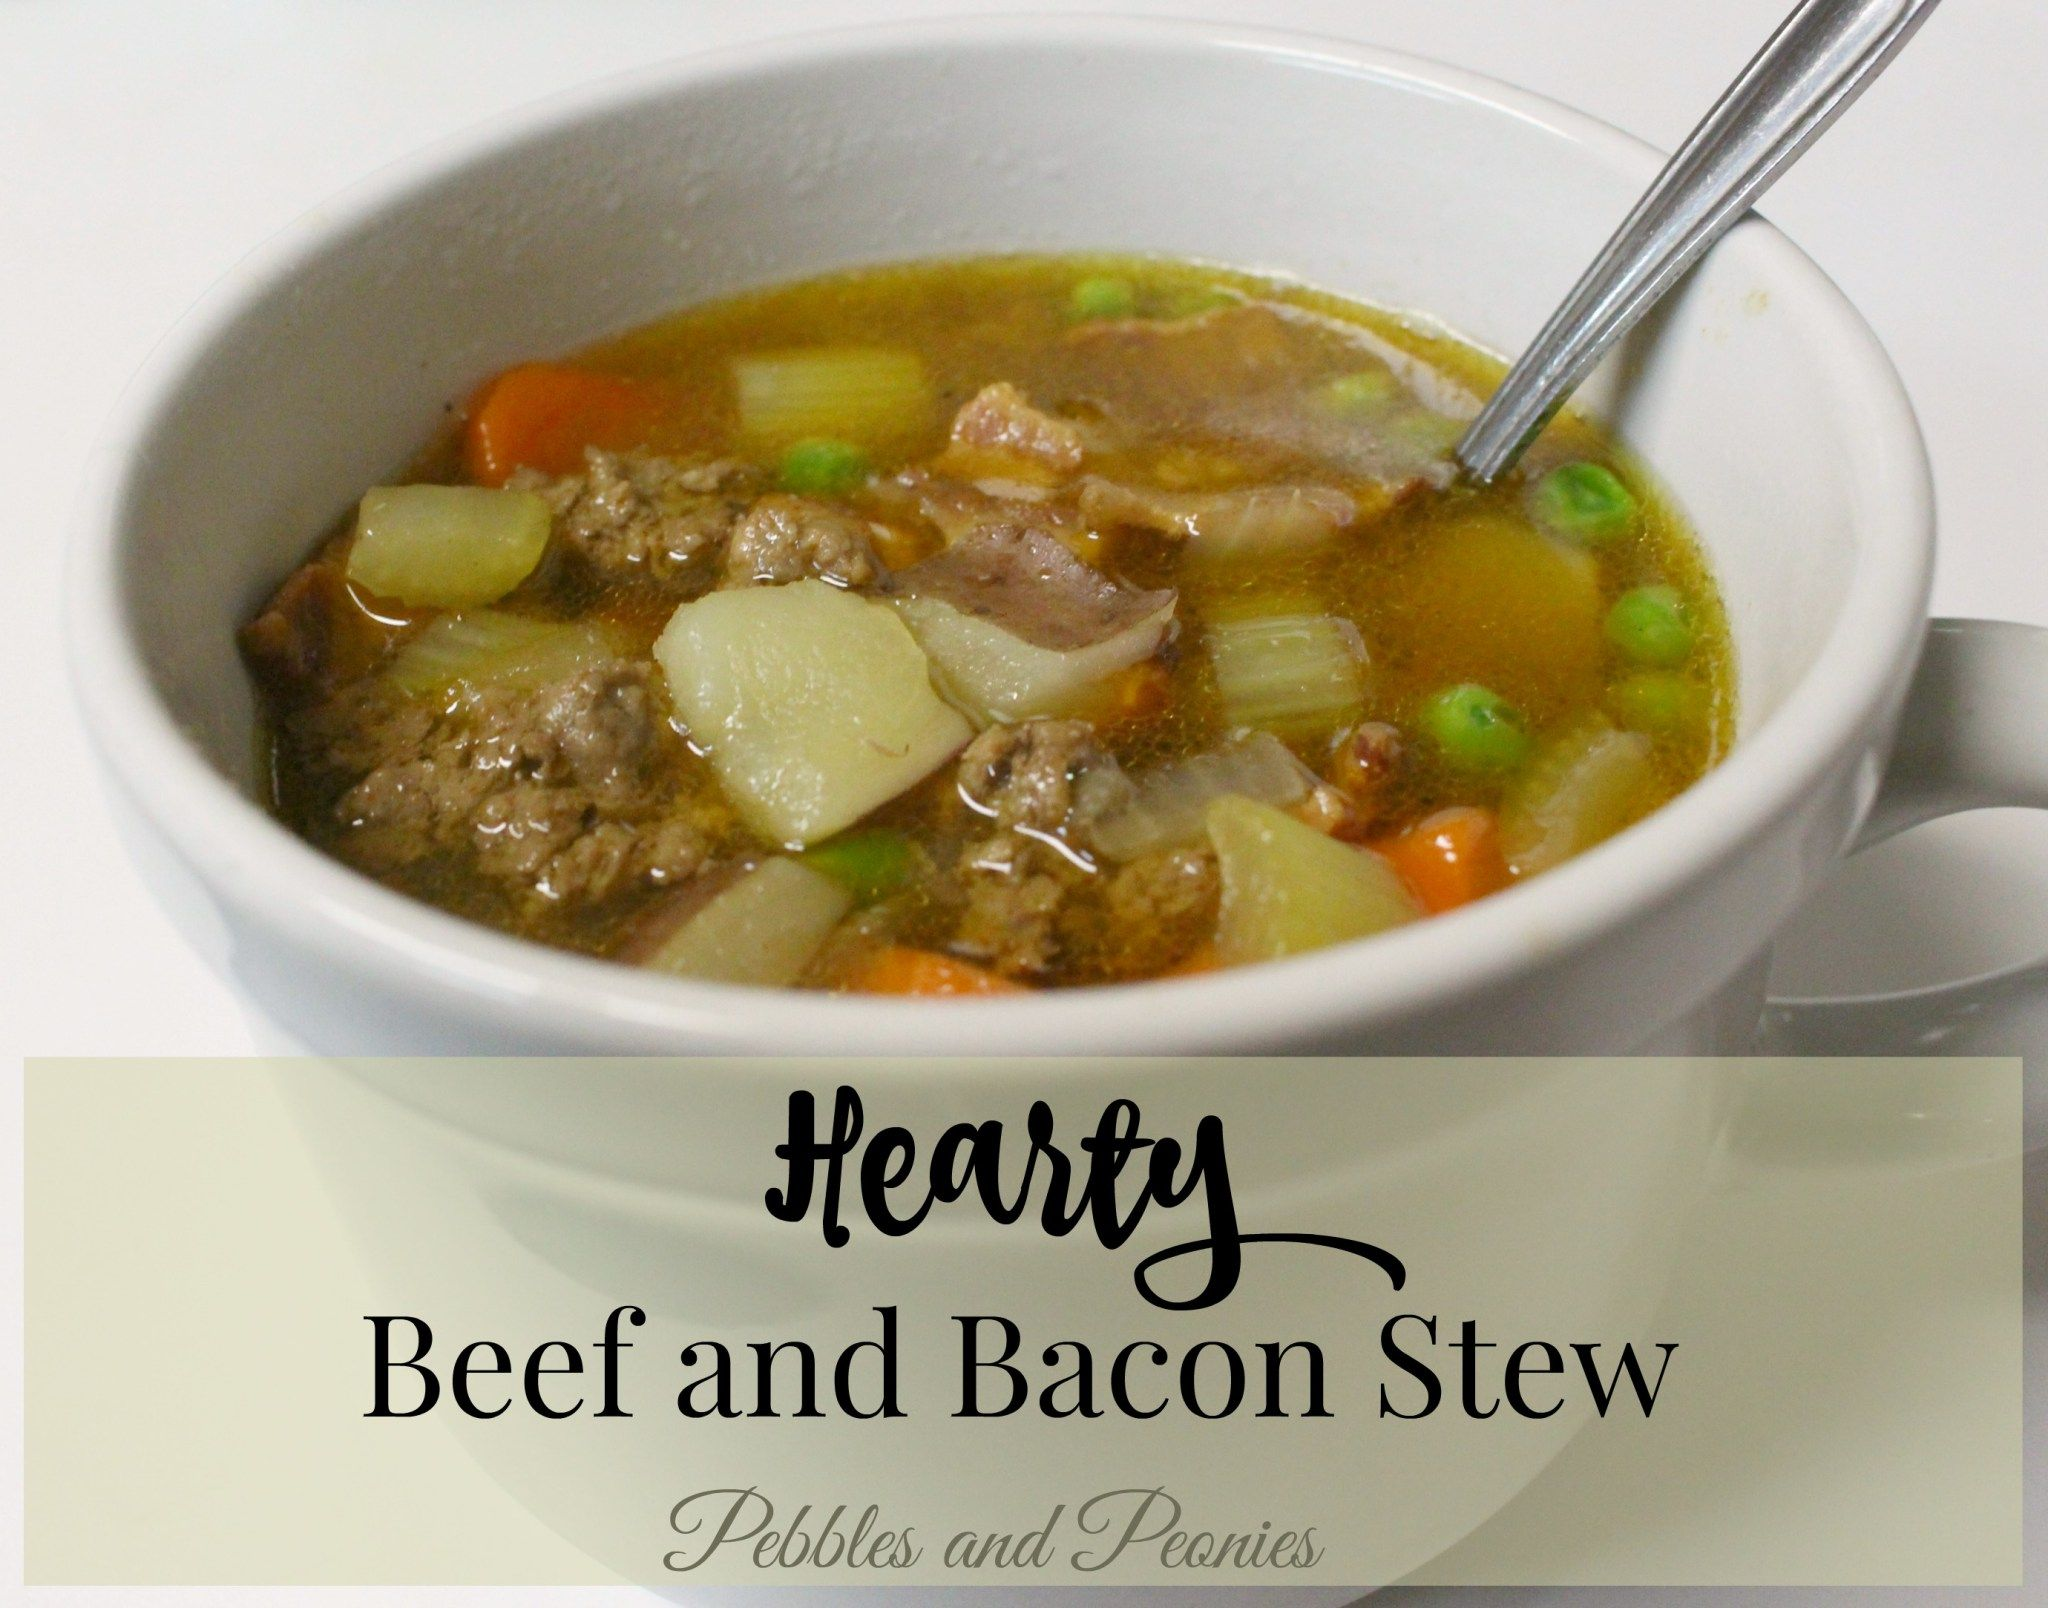 Hearty Beef and Bacon Stew